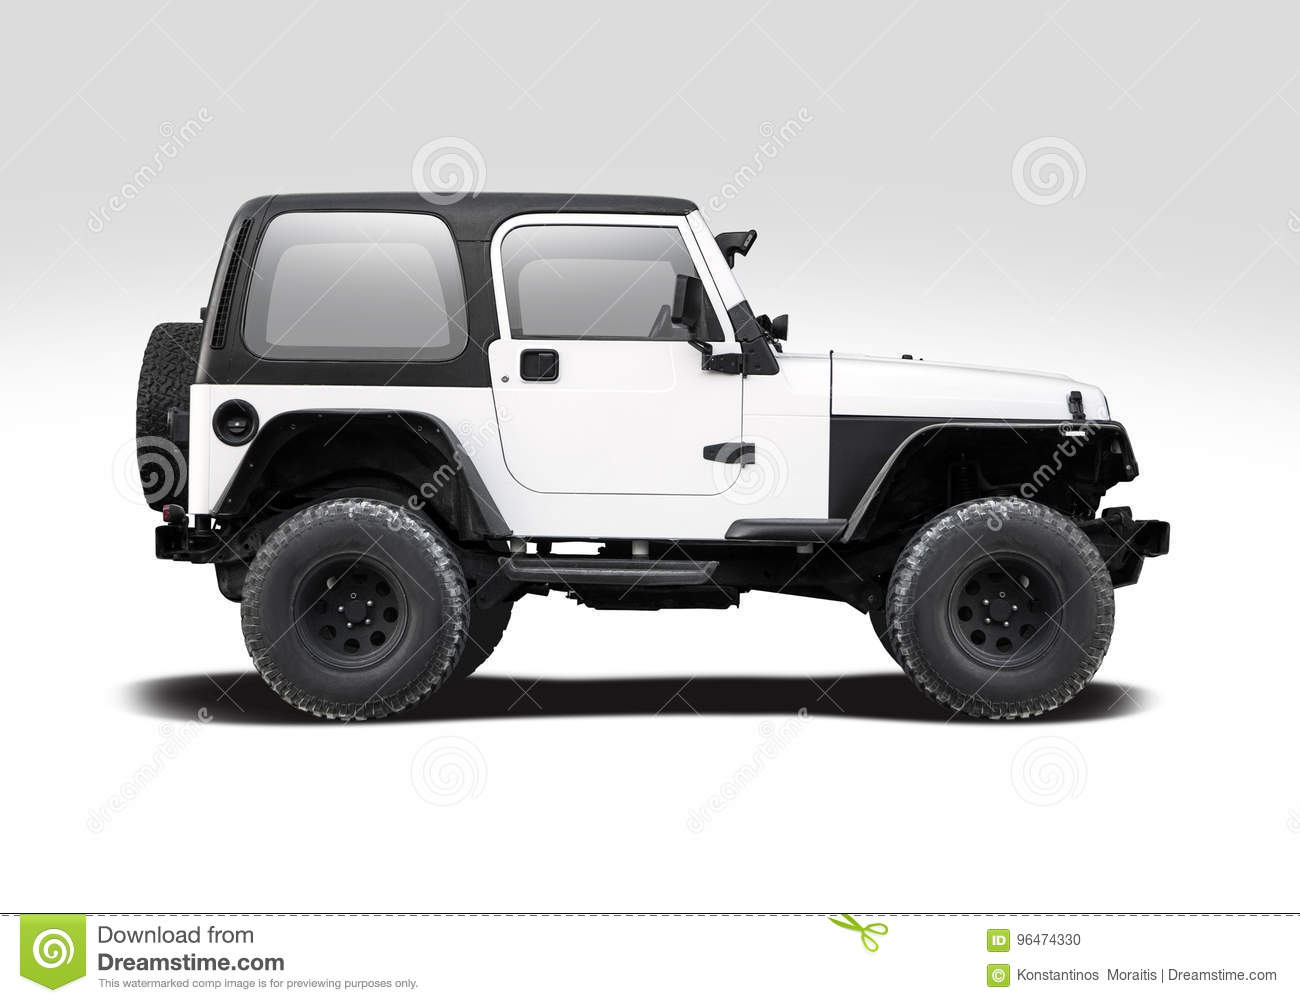 jeep wrangler isolated